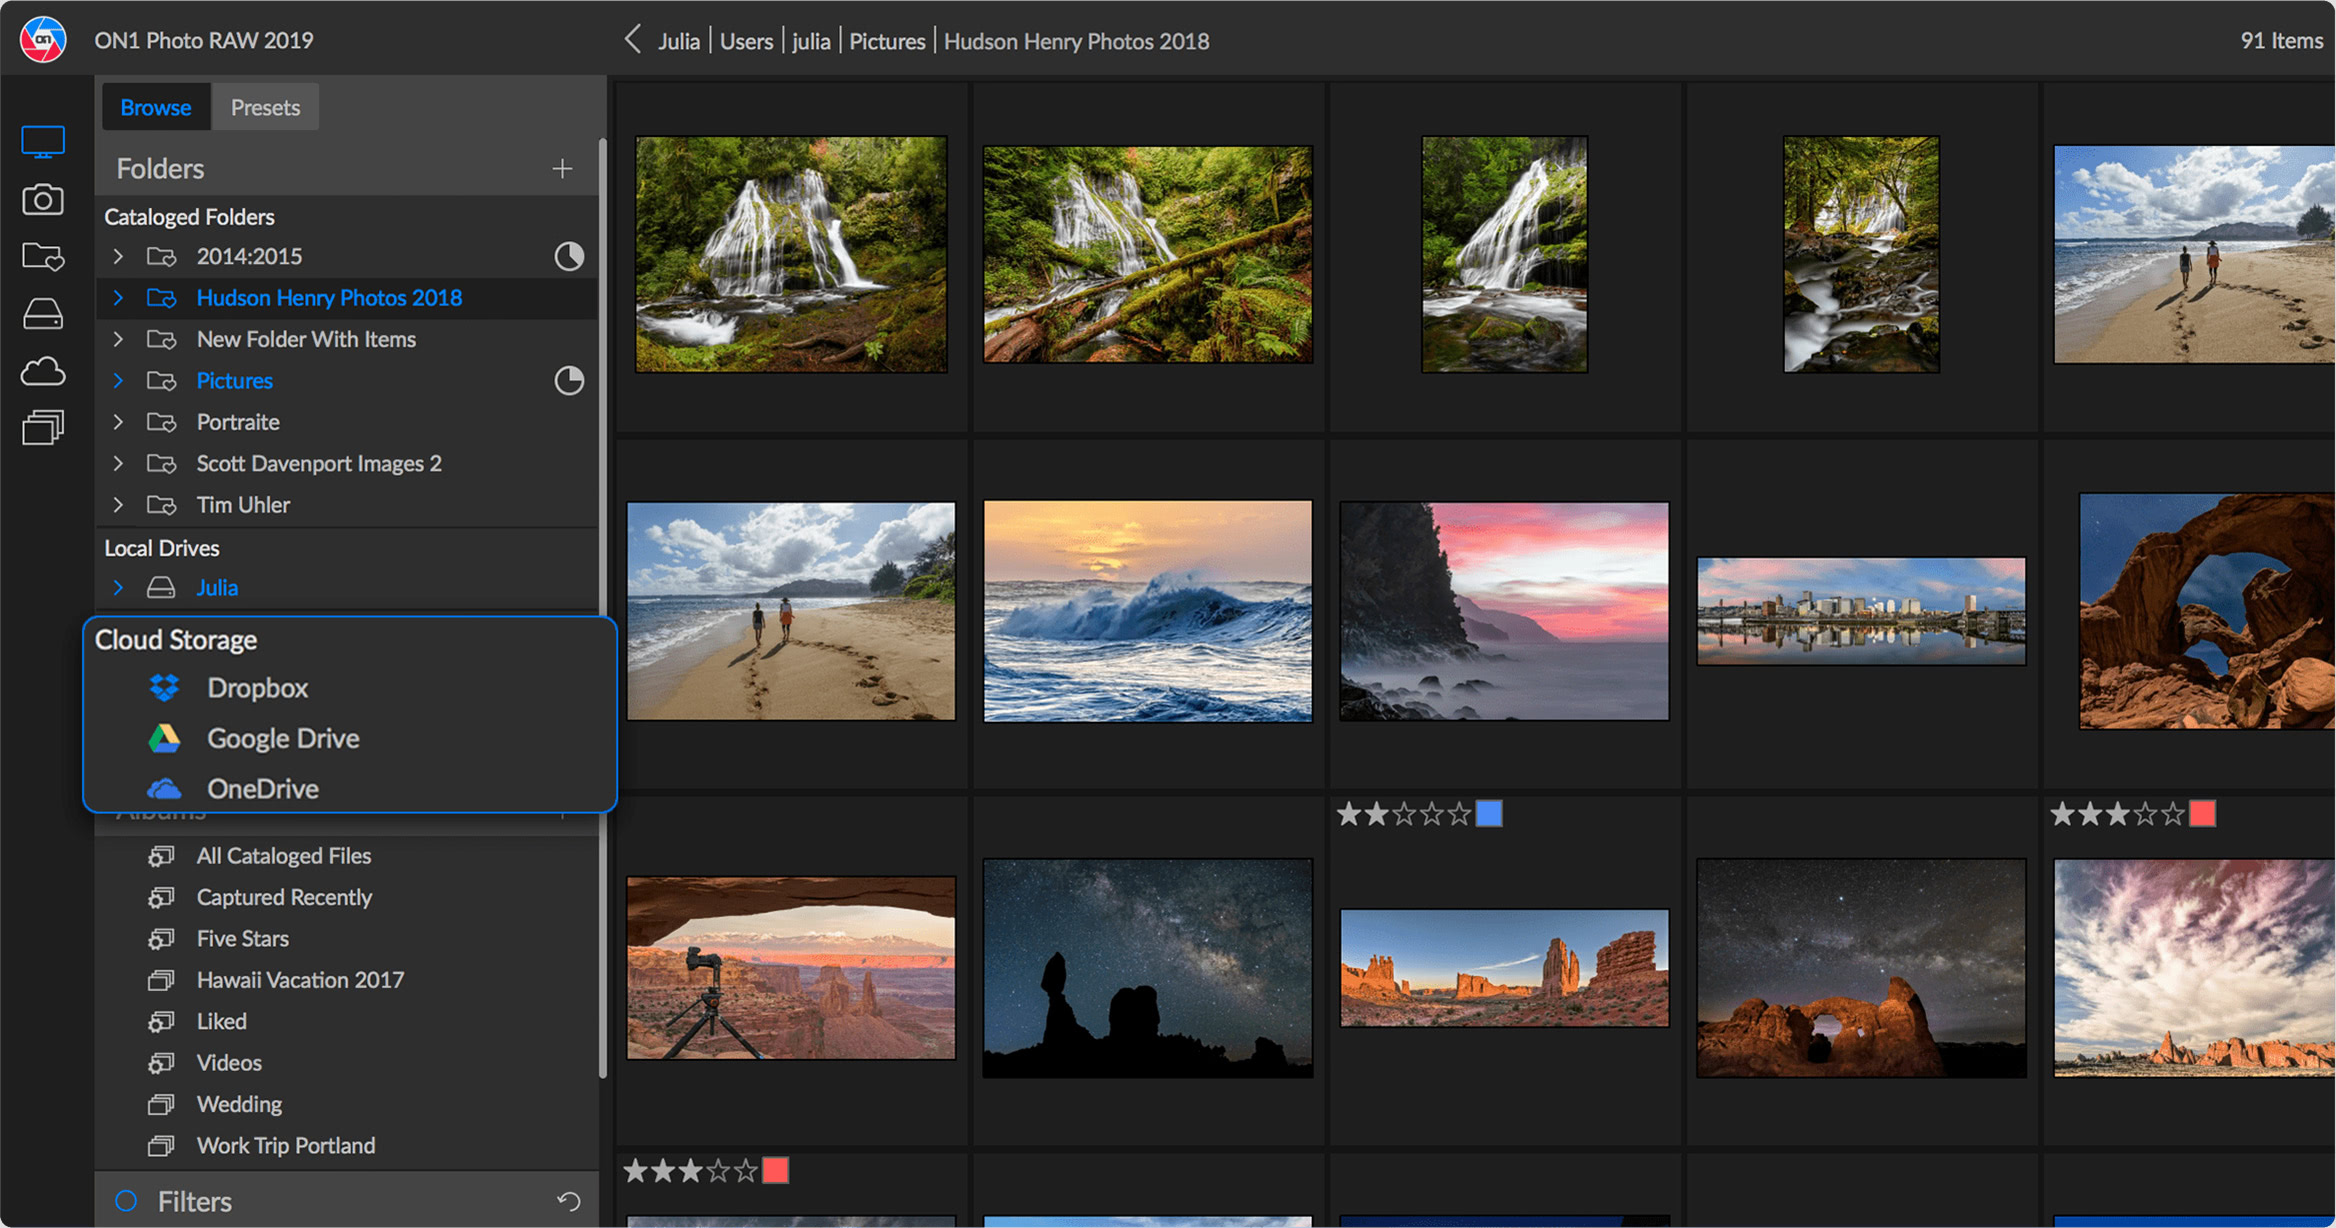 ON1 Photo RAW 2019 - Photo Editor and Lightroom Alternative